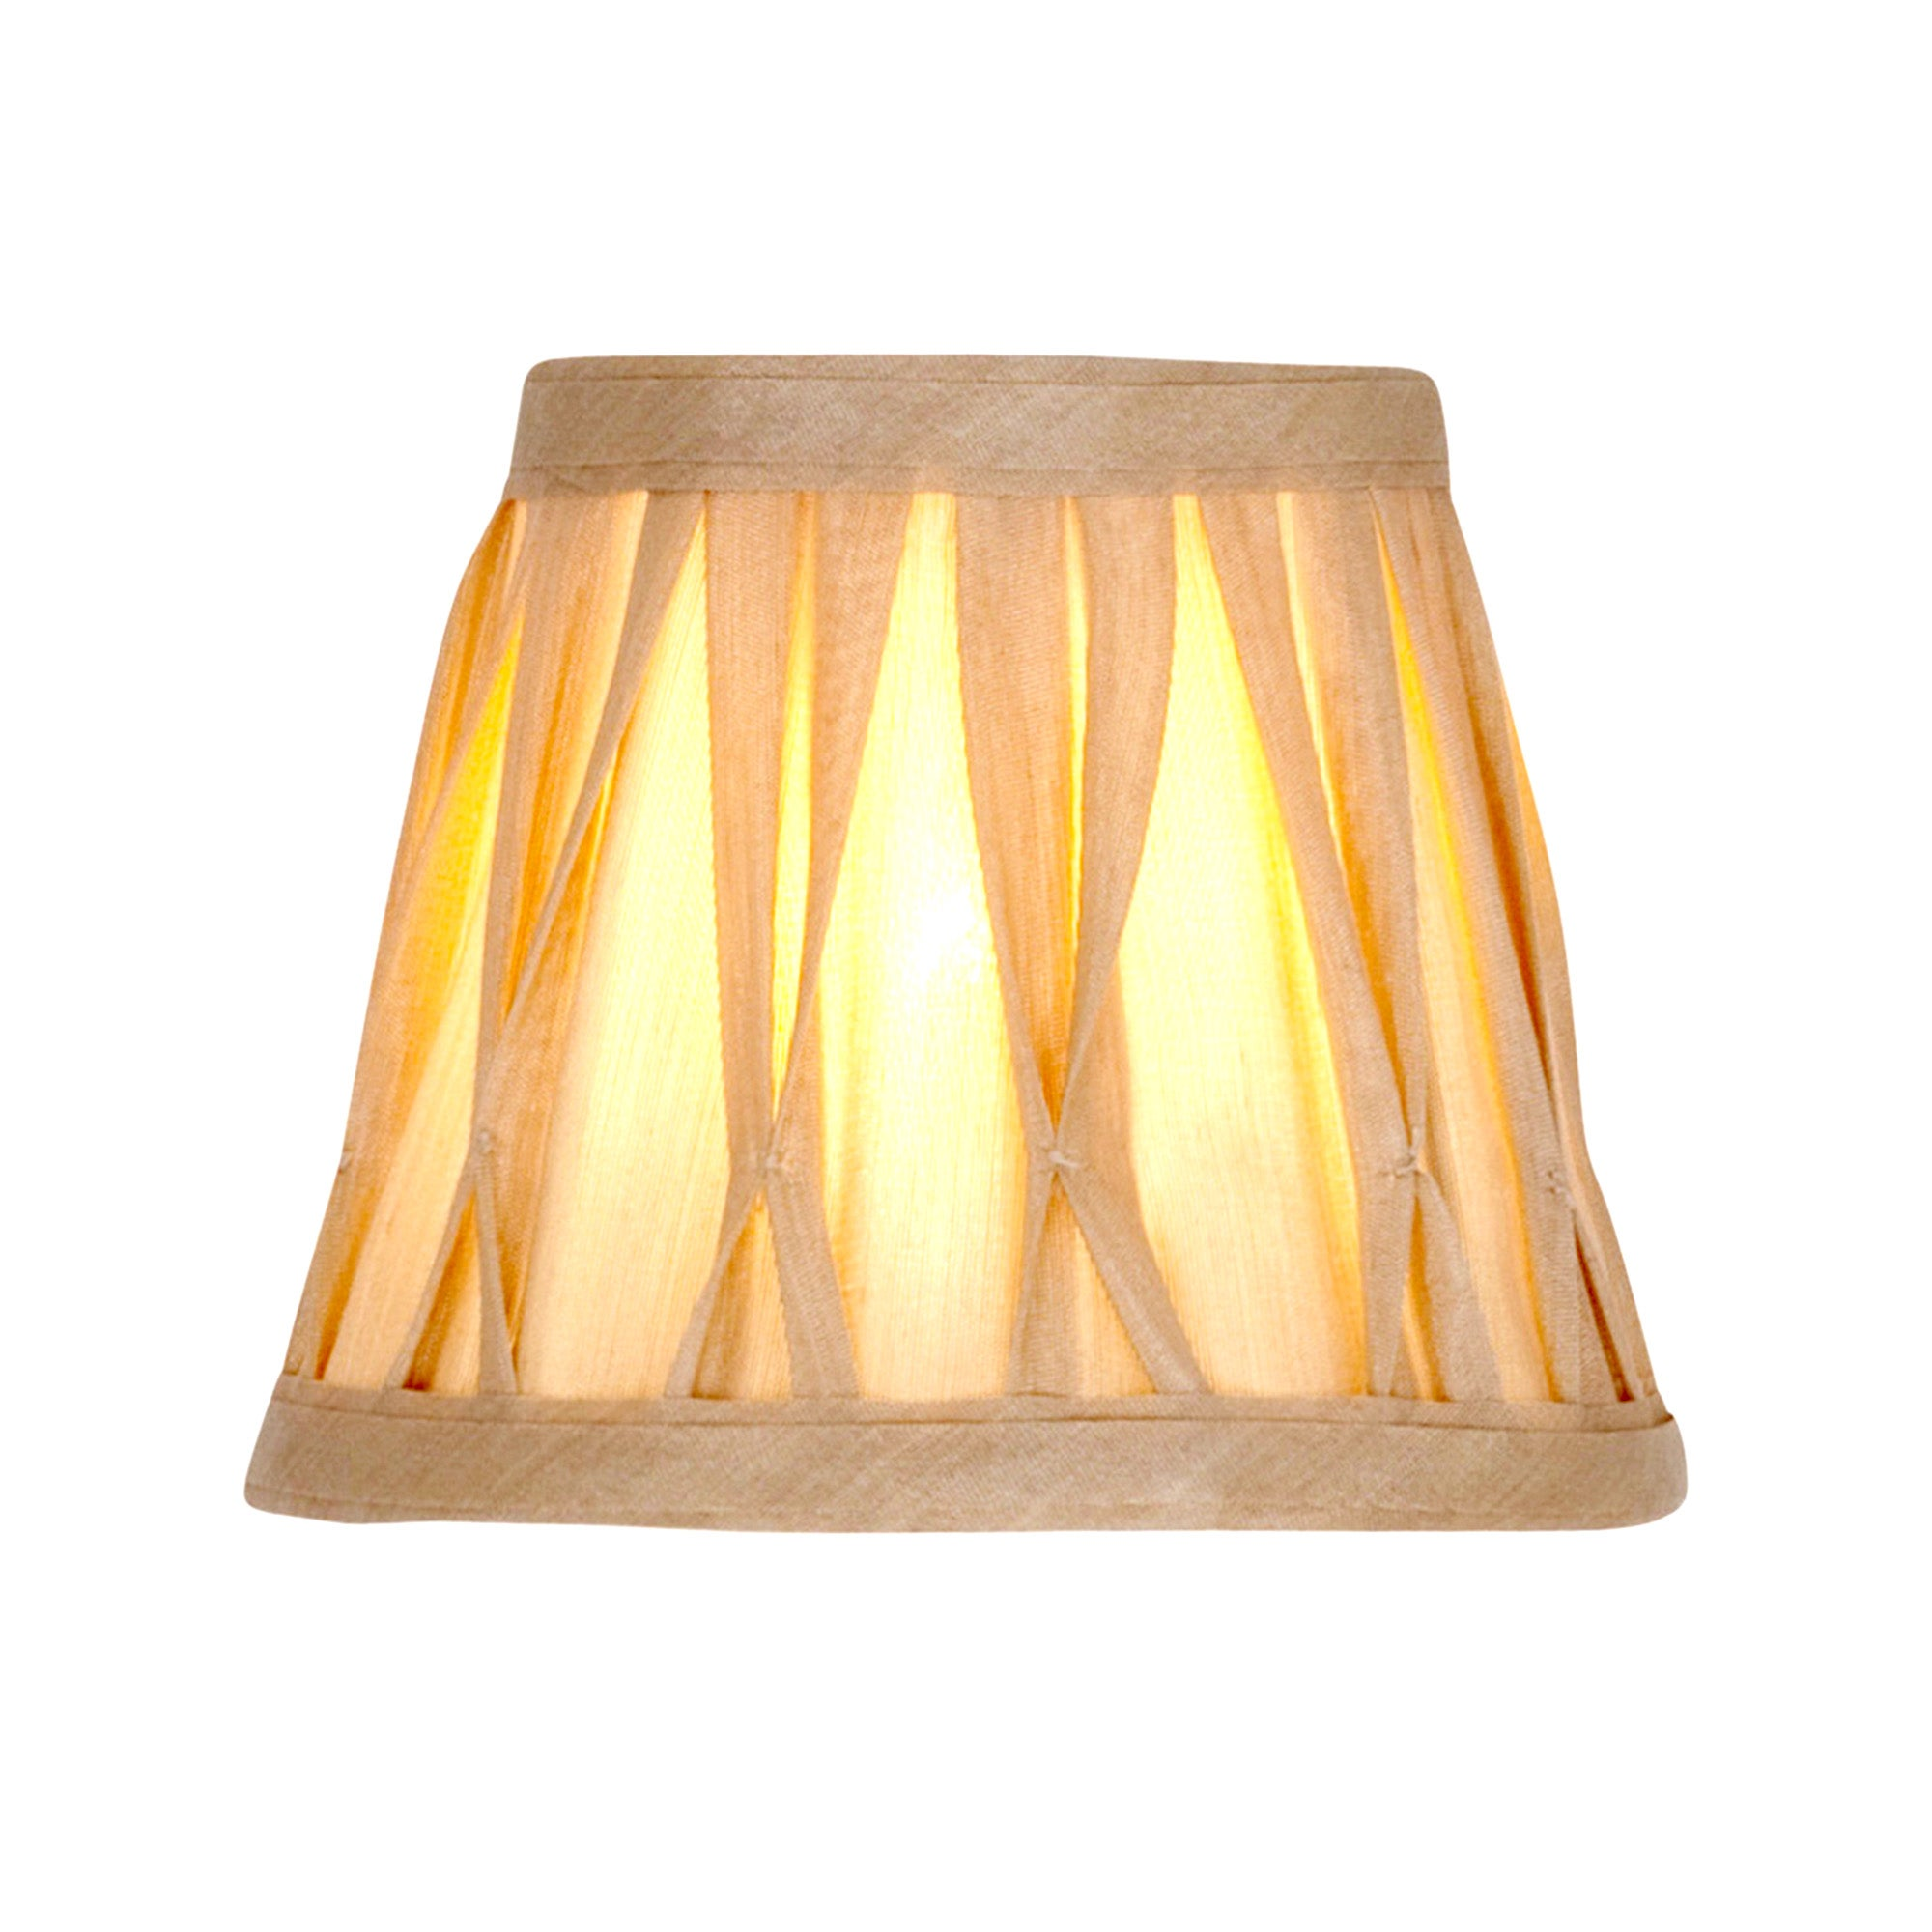 Champagne Valerie Pinch Pleat Candle Light Shade